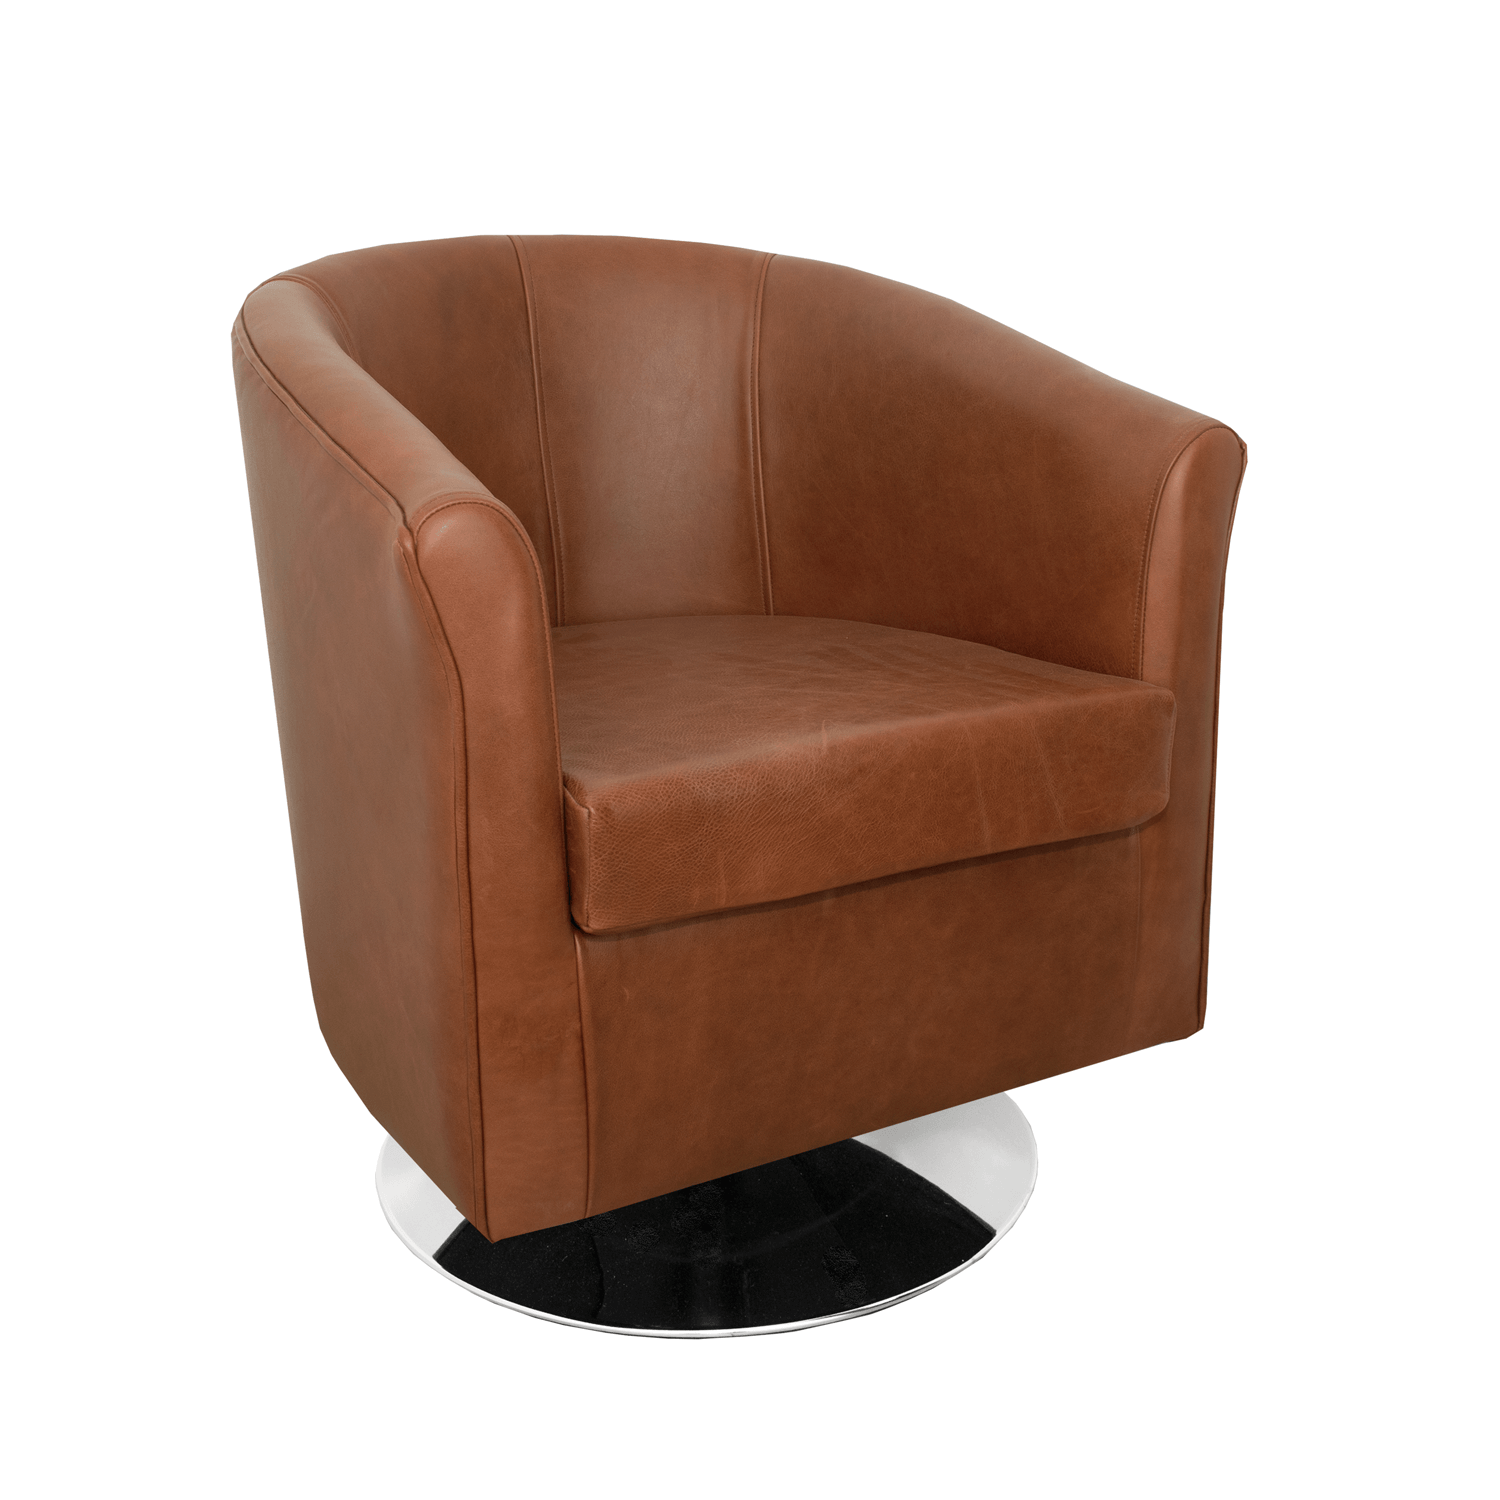 Astonishing Tuscany Genuine Leather Swivel Tub Chair In Crib 5 Mustang Squirreltailoven Fun Painted Chair Ideas Images Squirreltailovenorg